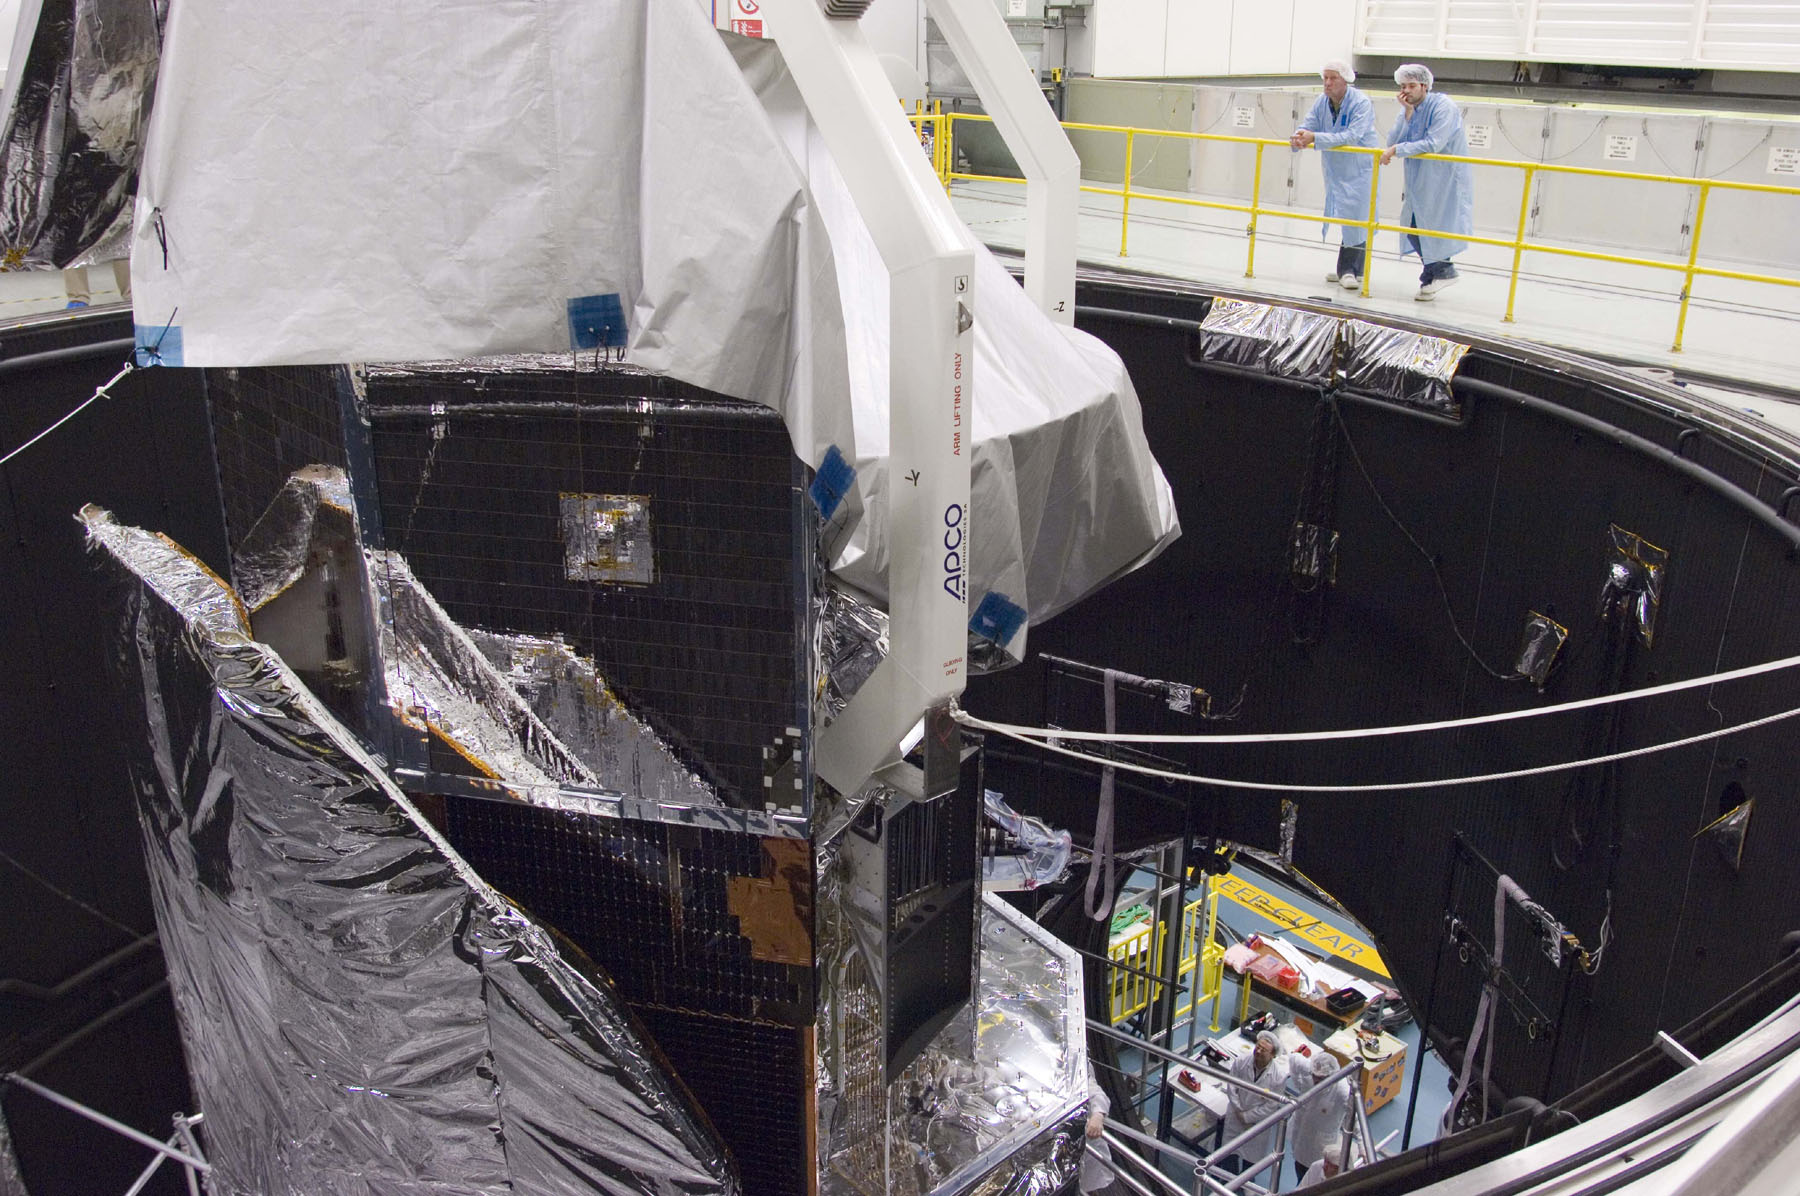 Herschel in the Large Space Simulator (LSS).